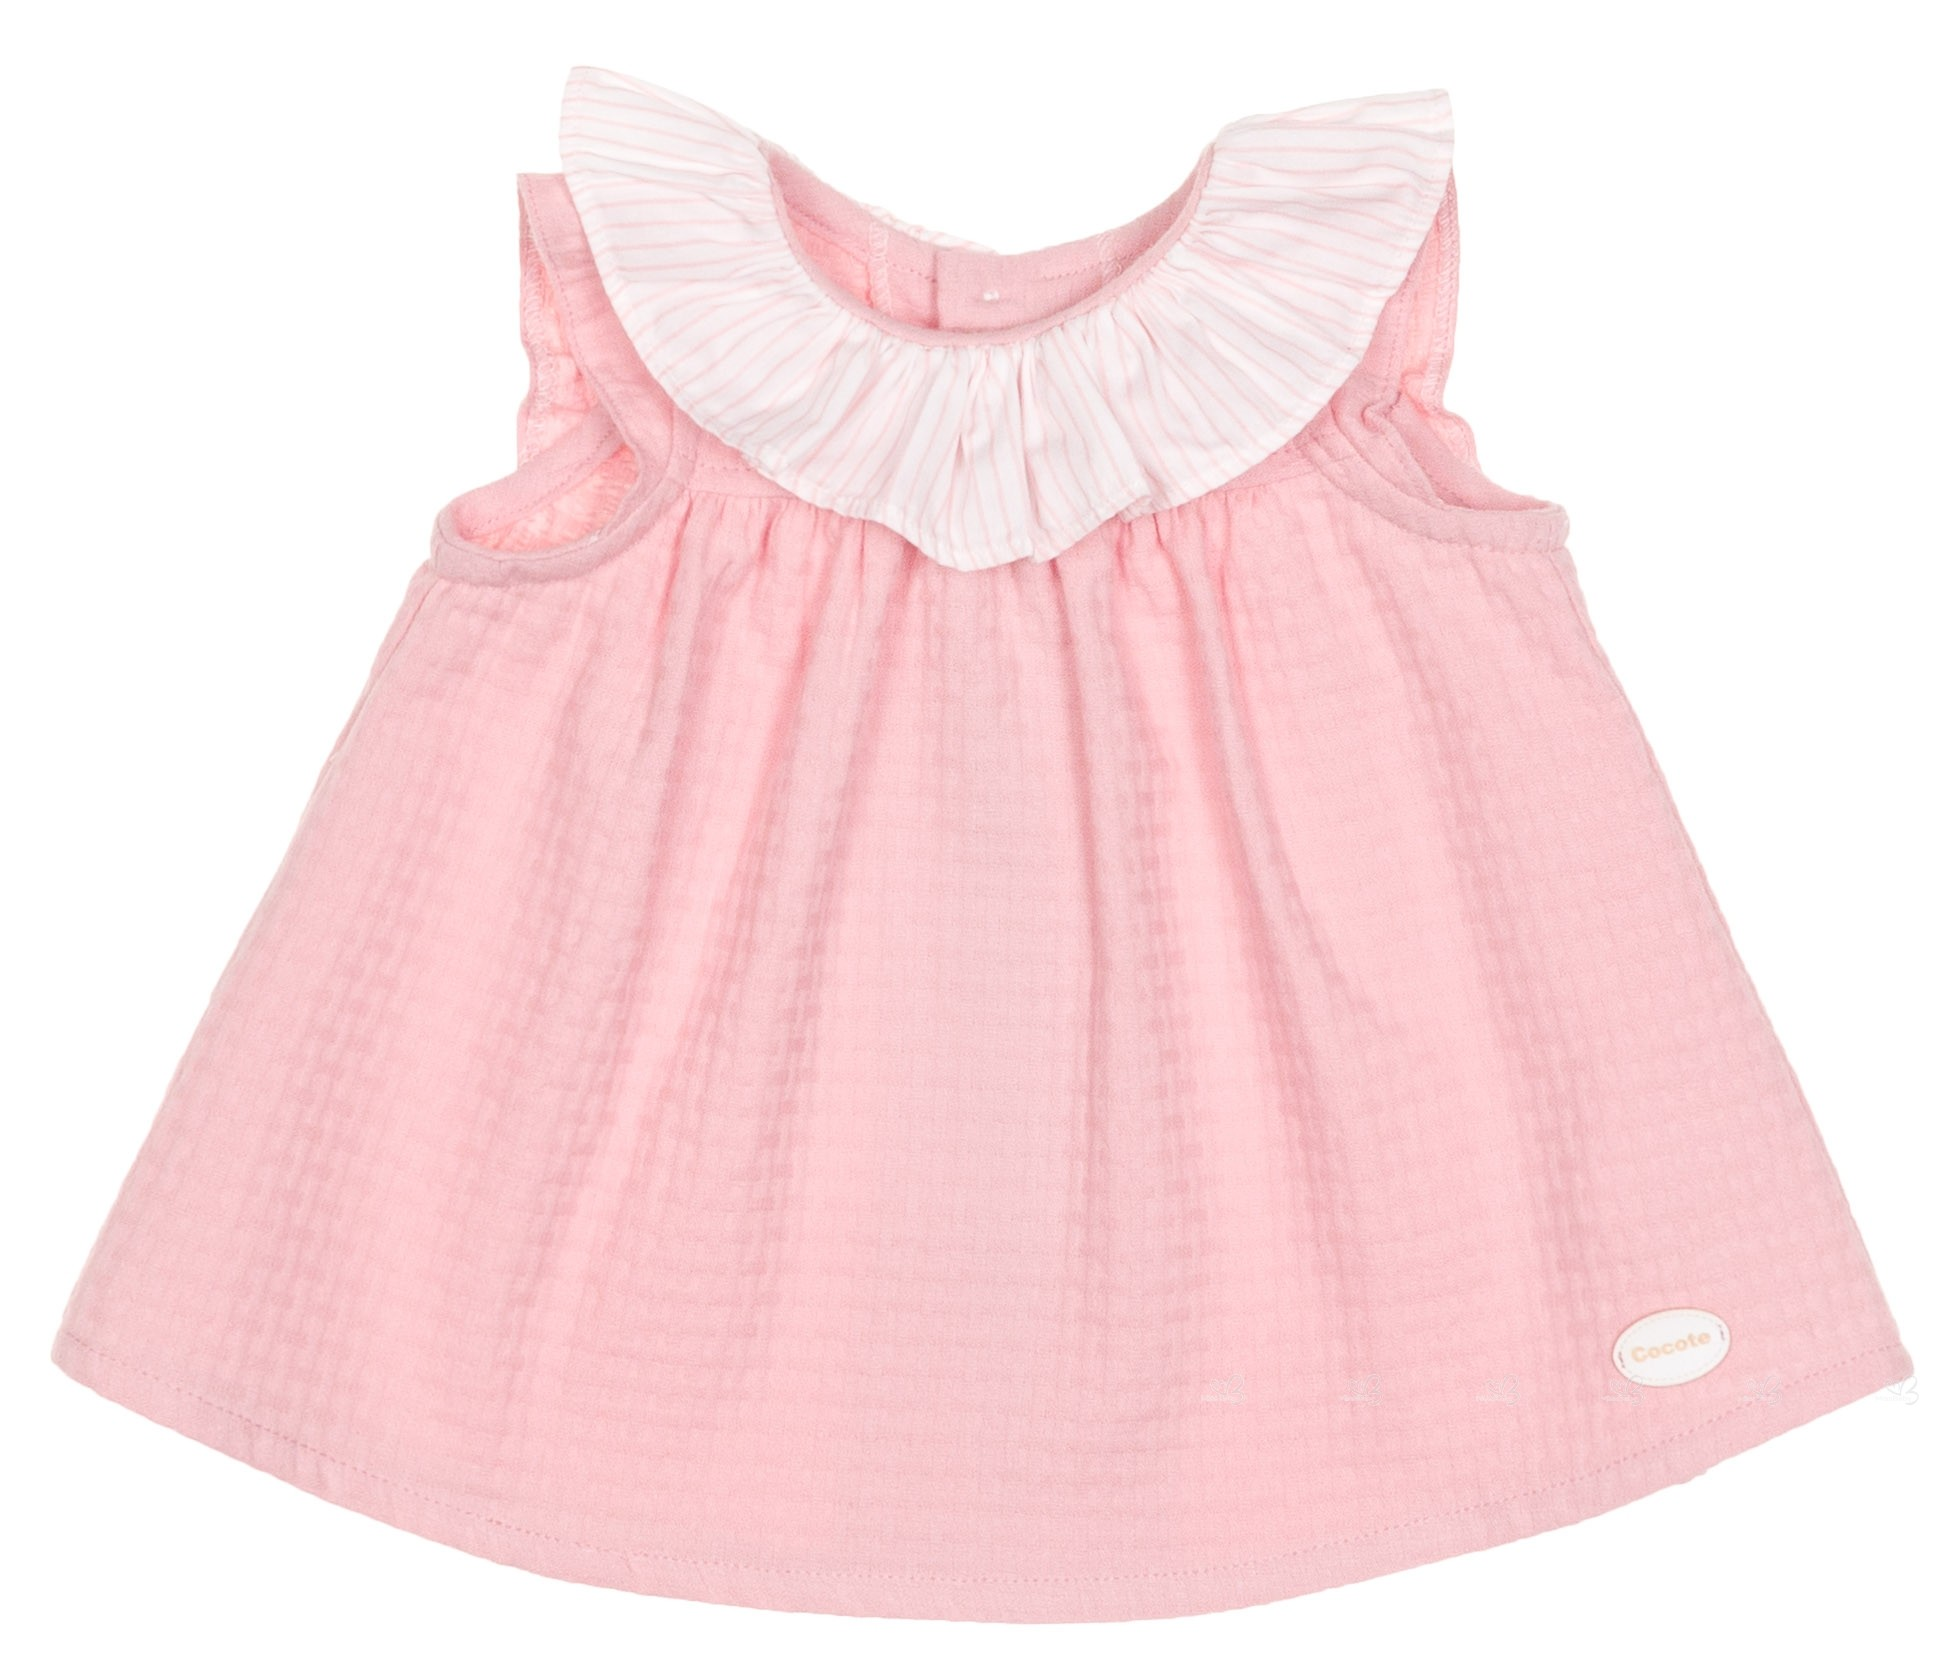 Cocote Baby Girls Pale Pink Cotton Dress with Striped Ruffle Collar